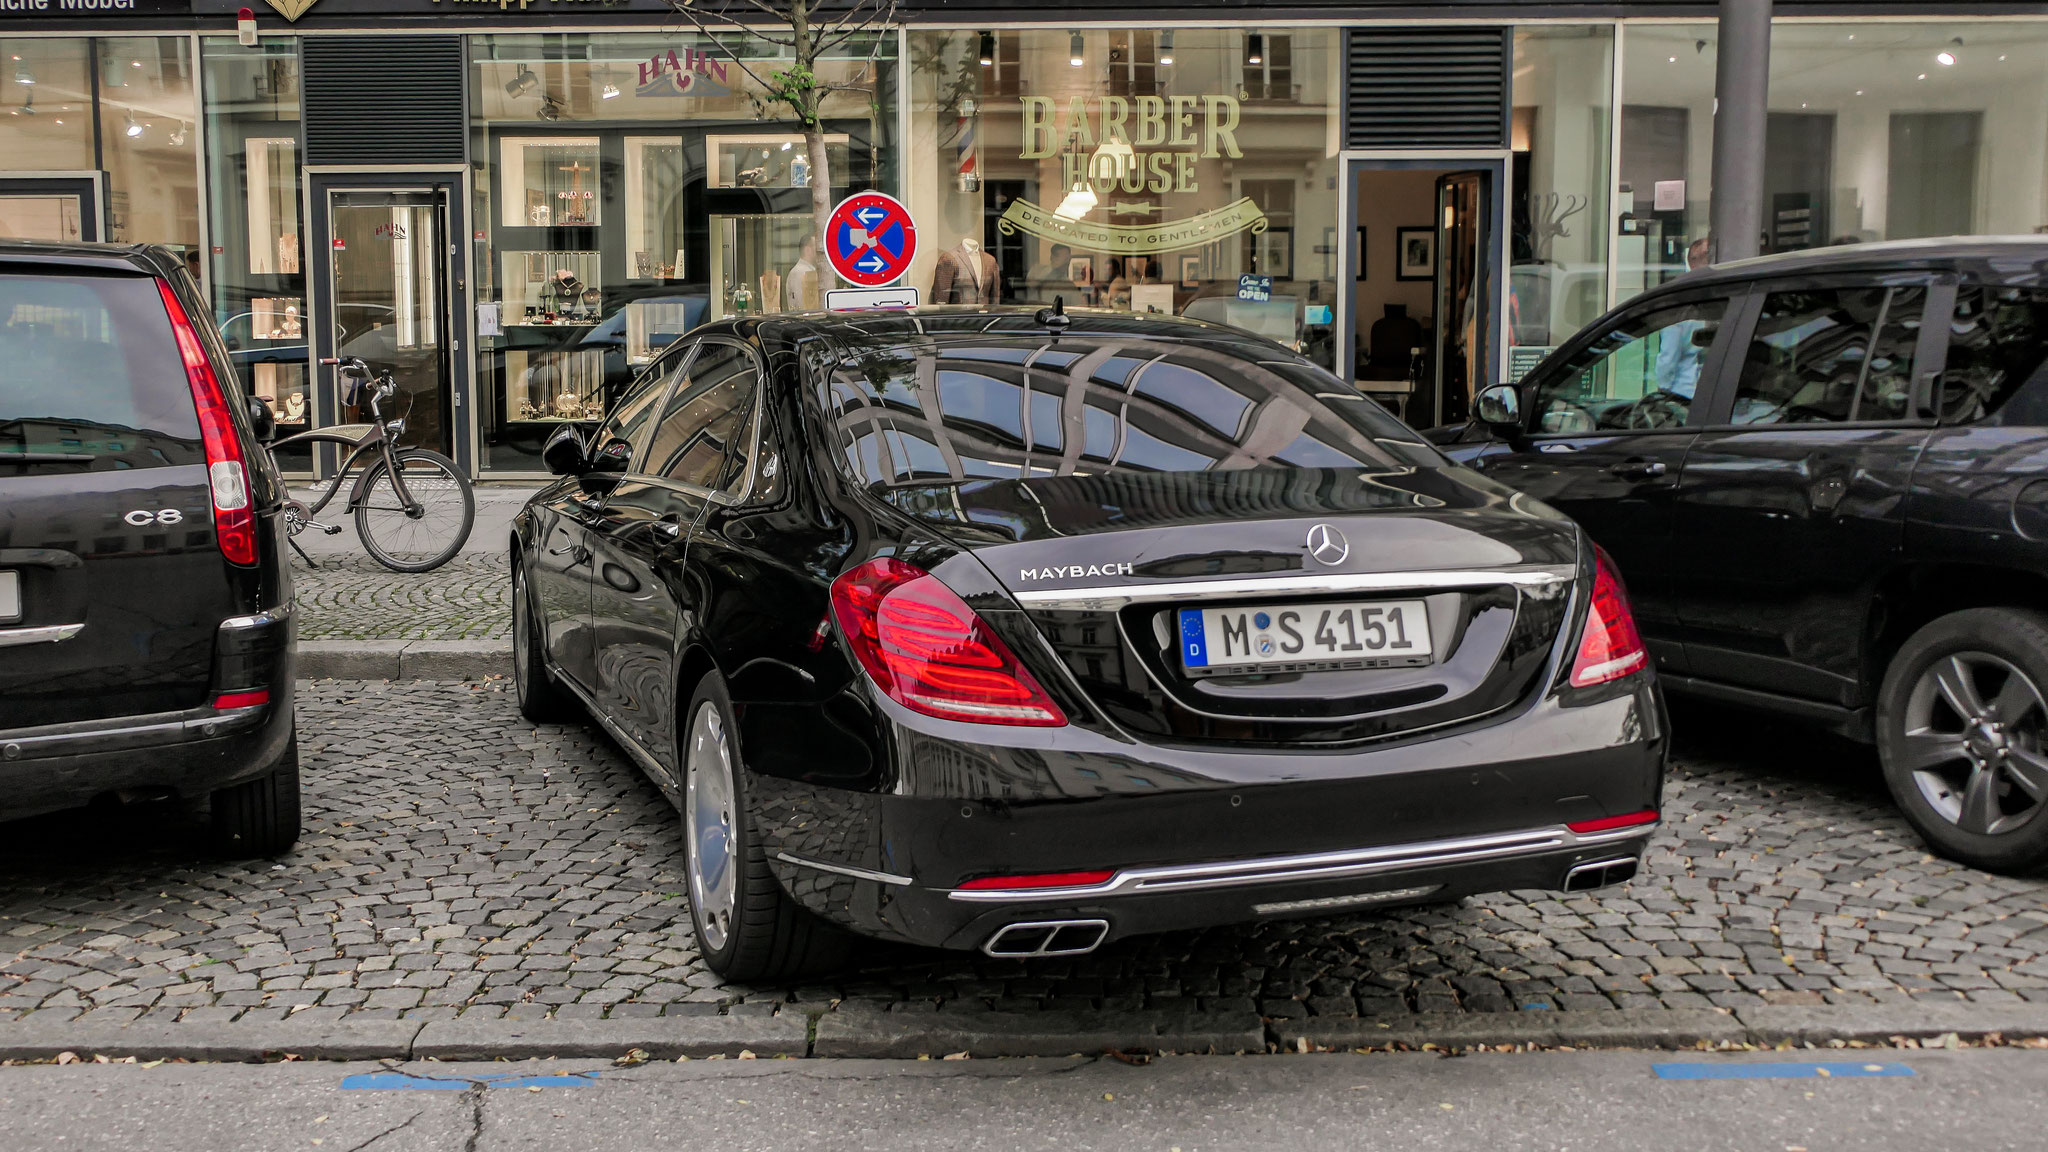 Mercedes Maybach S560 - M-S-4151